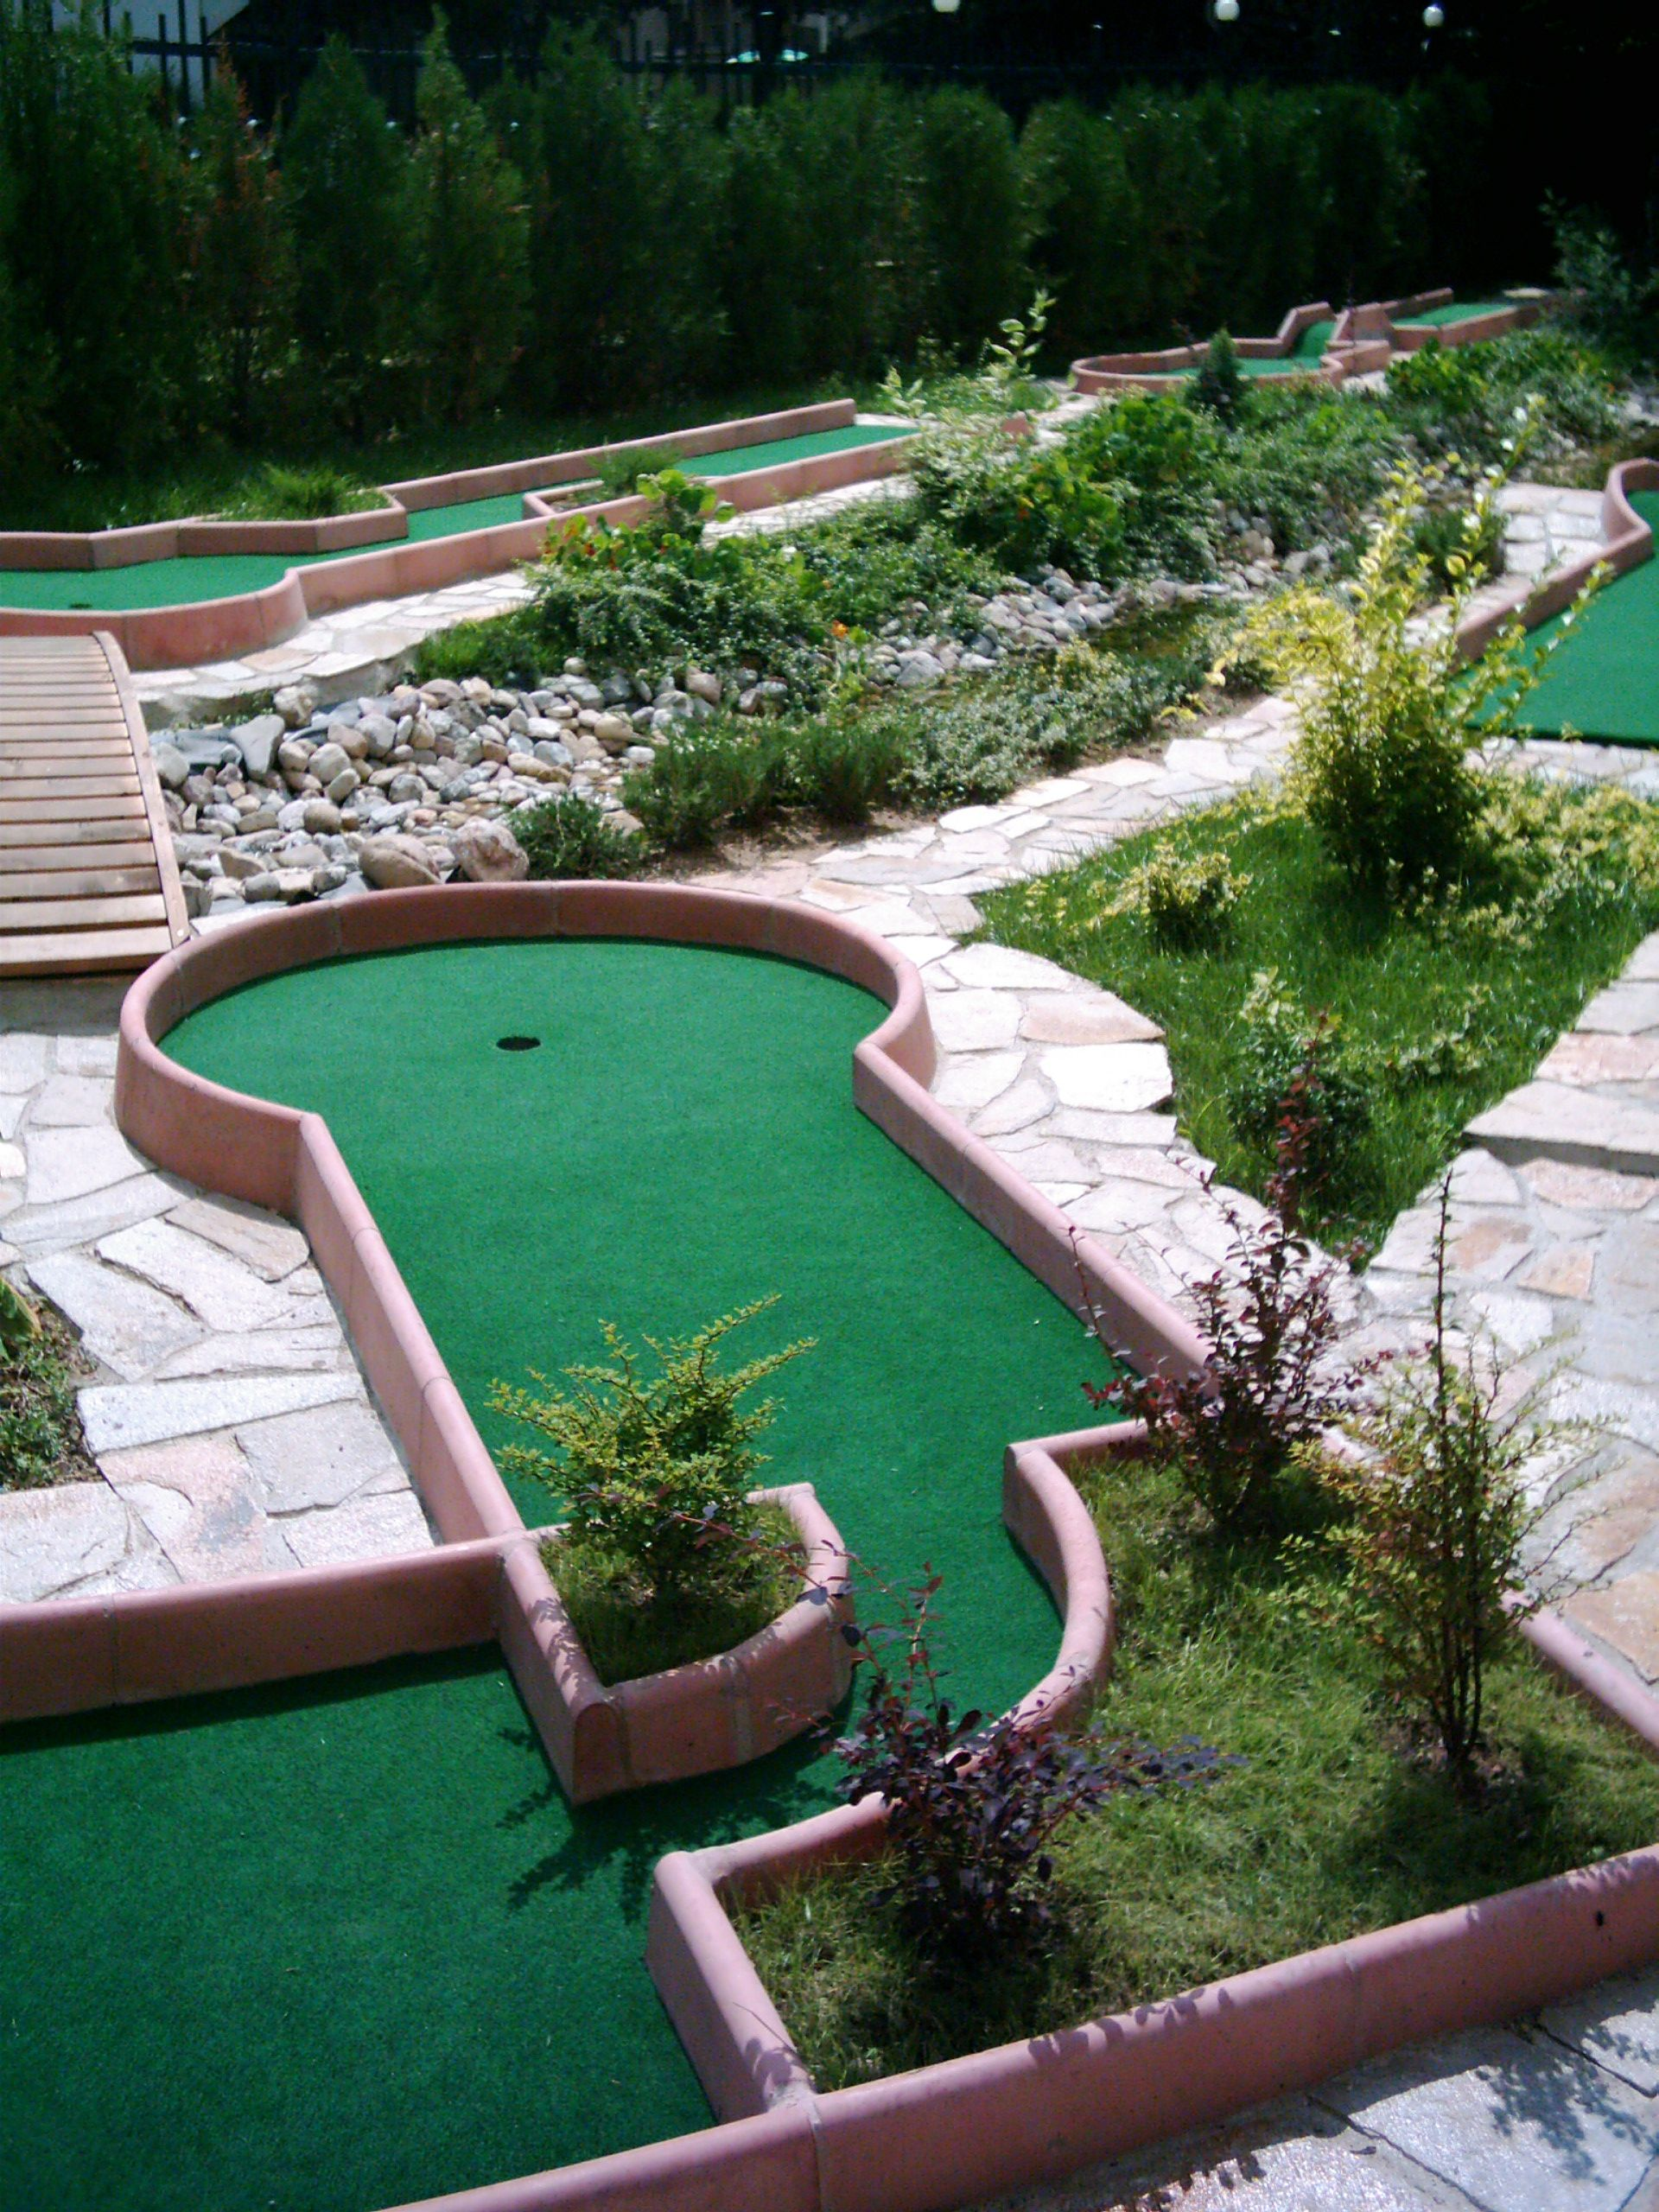 Pin by Stan Stoyanov on miniature golf courses | Backyard ...